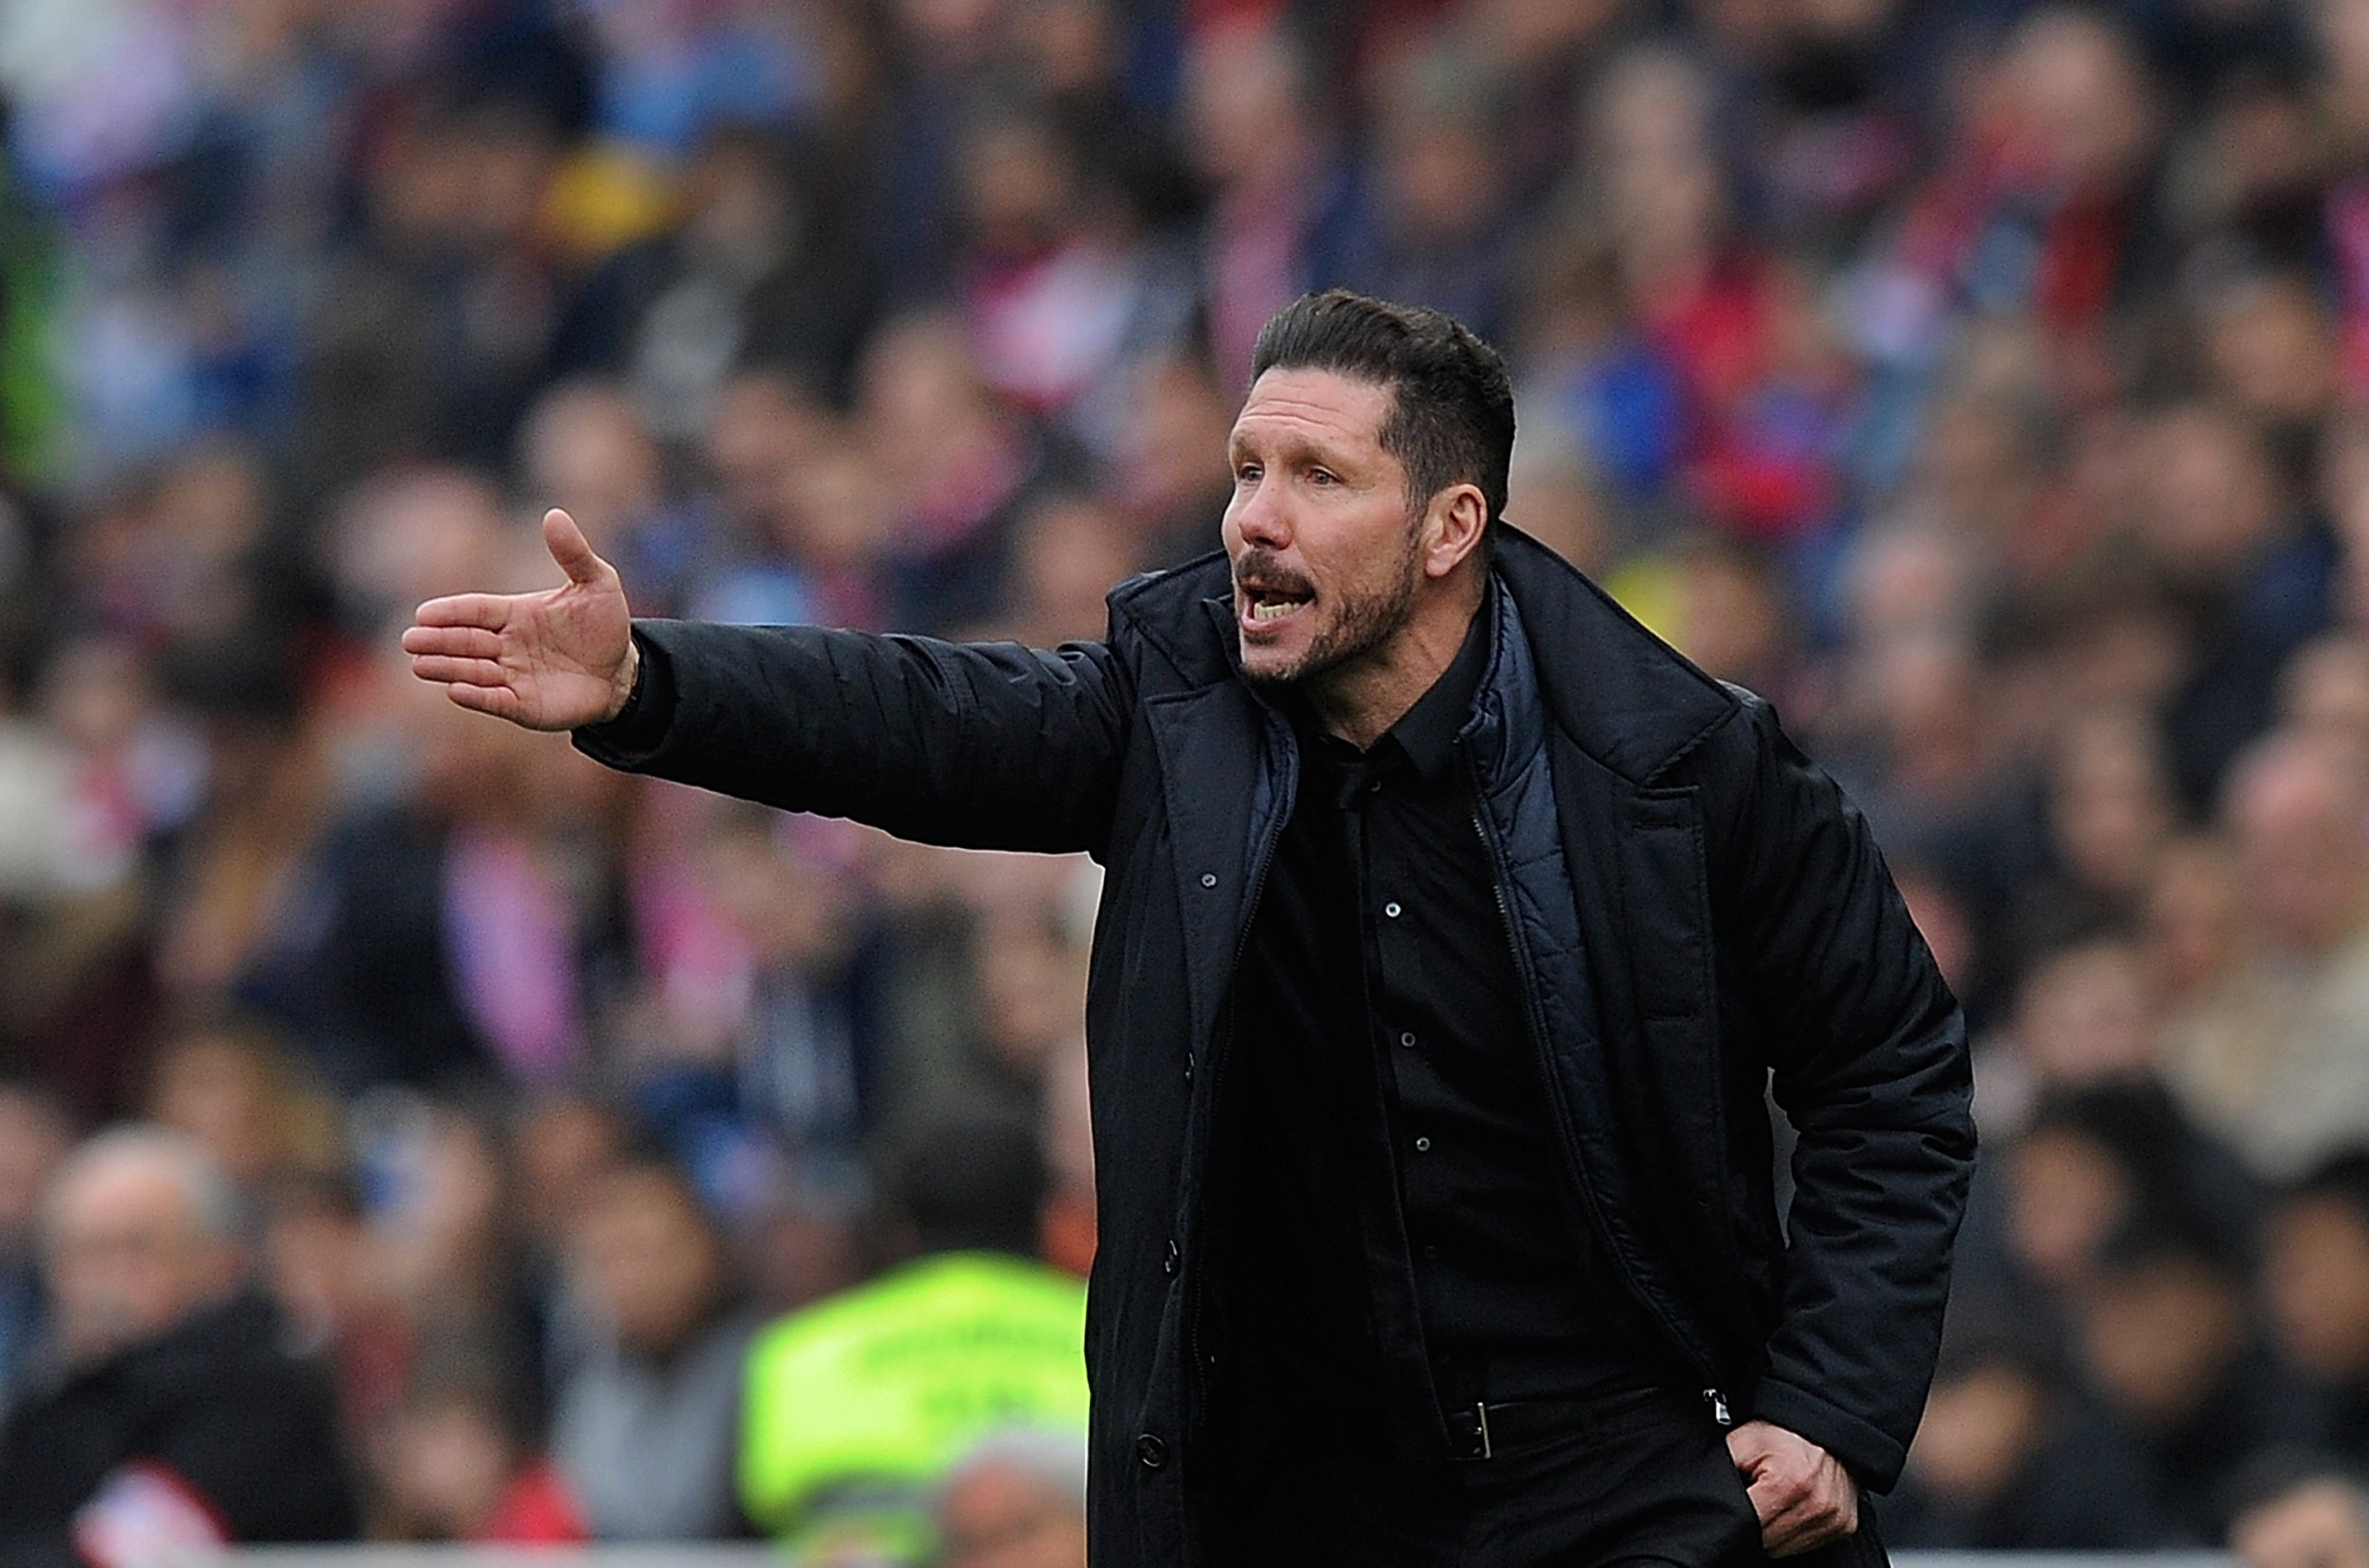 Diego Simeone took Atletico Madrid to within seconds of the UEFA Champions League in 2014.